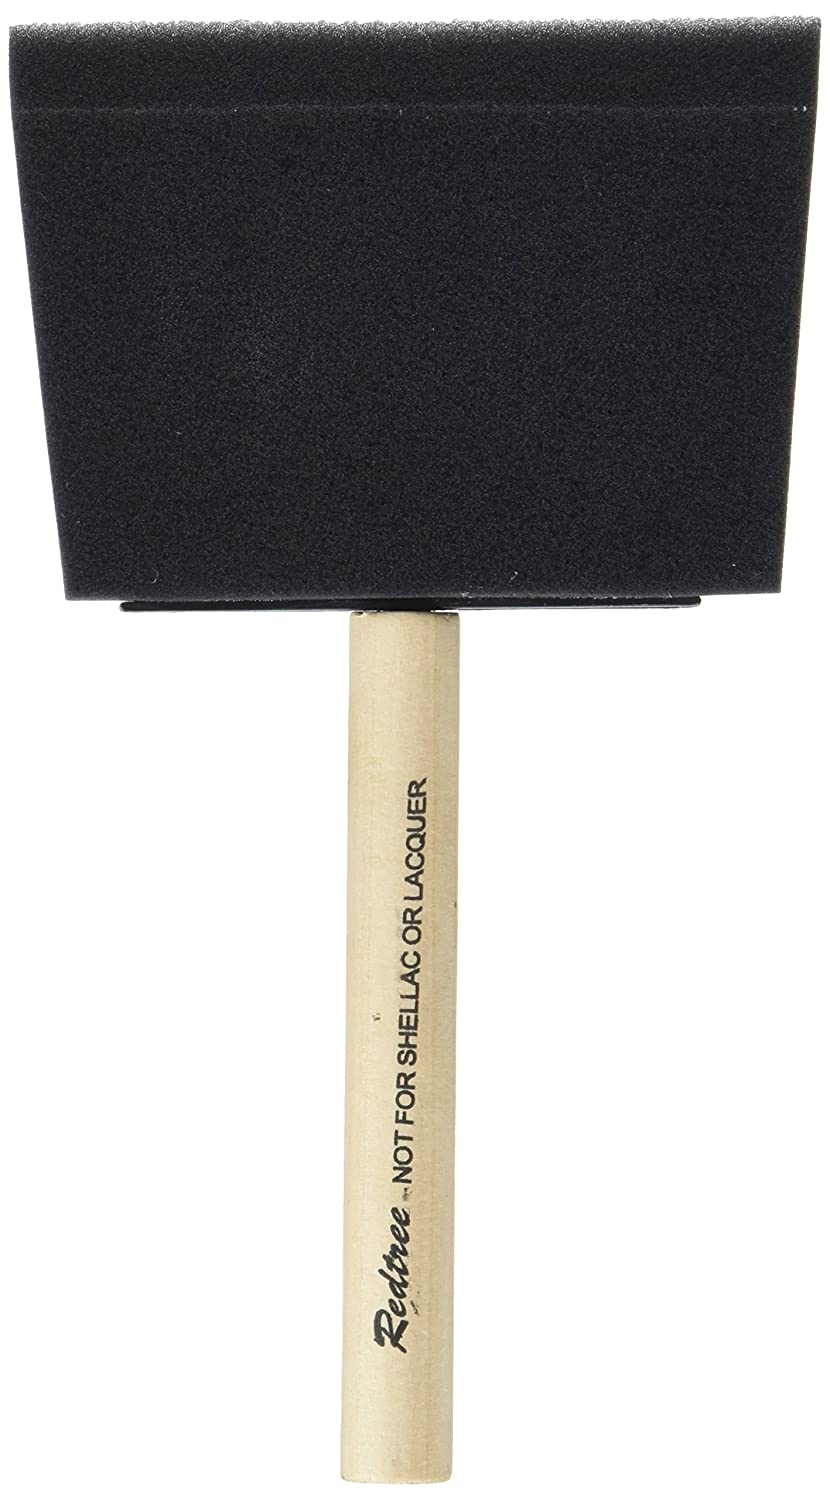 Redtree Industries 000081 Disposable Foam Paint Brush - 4